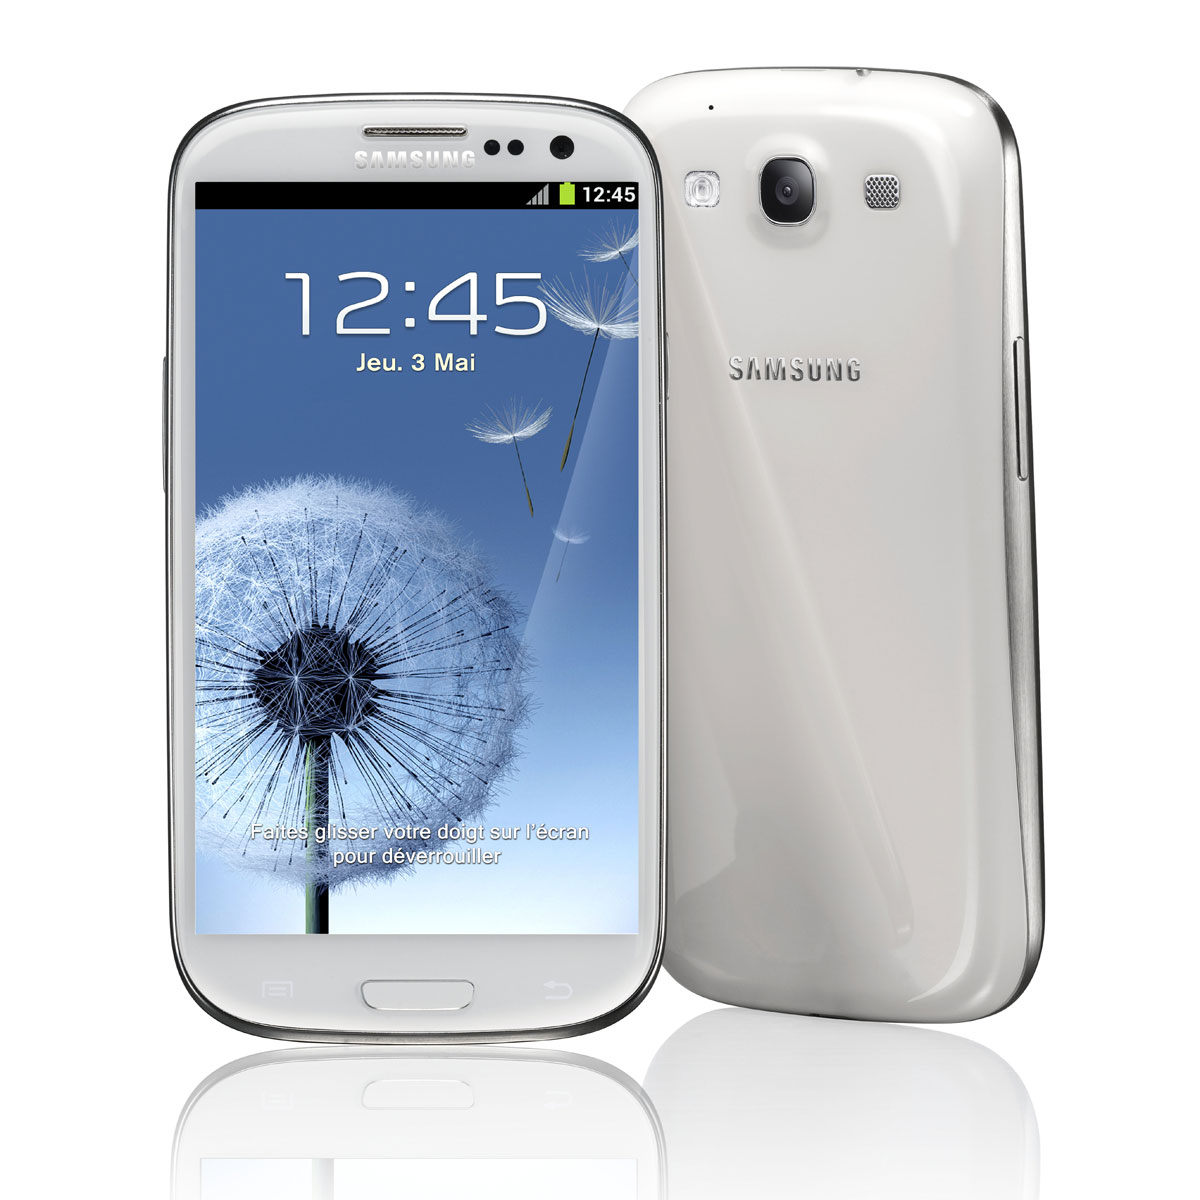 """Mobile & smartphone Samsung Galaxy SIII GT-i9300 Marble White 16 Go Smartphone 3G+ avec écran tactile HD Super AMOLED 4.8"""" sous Android 4.0"""